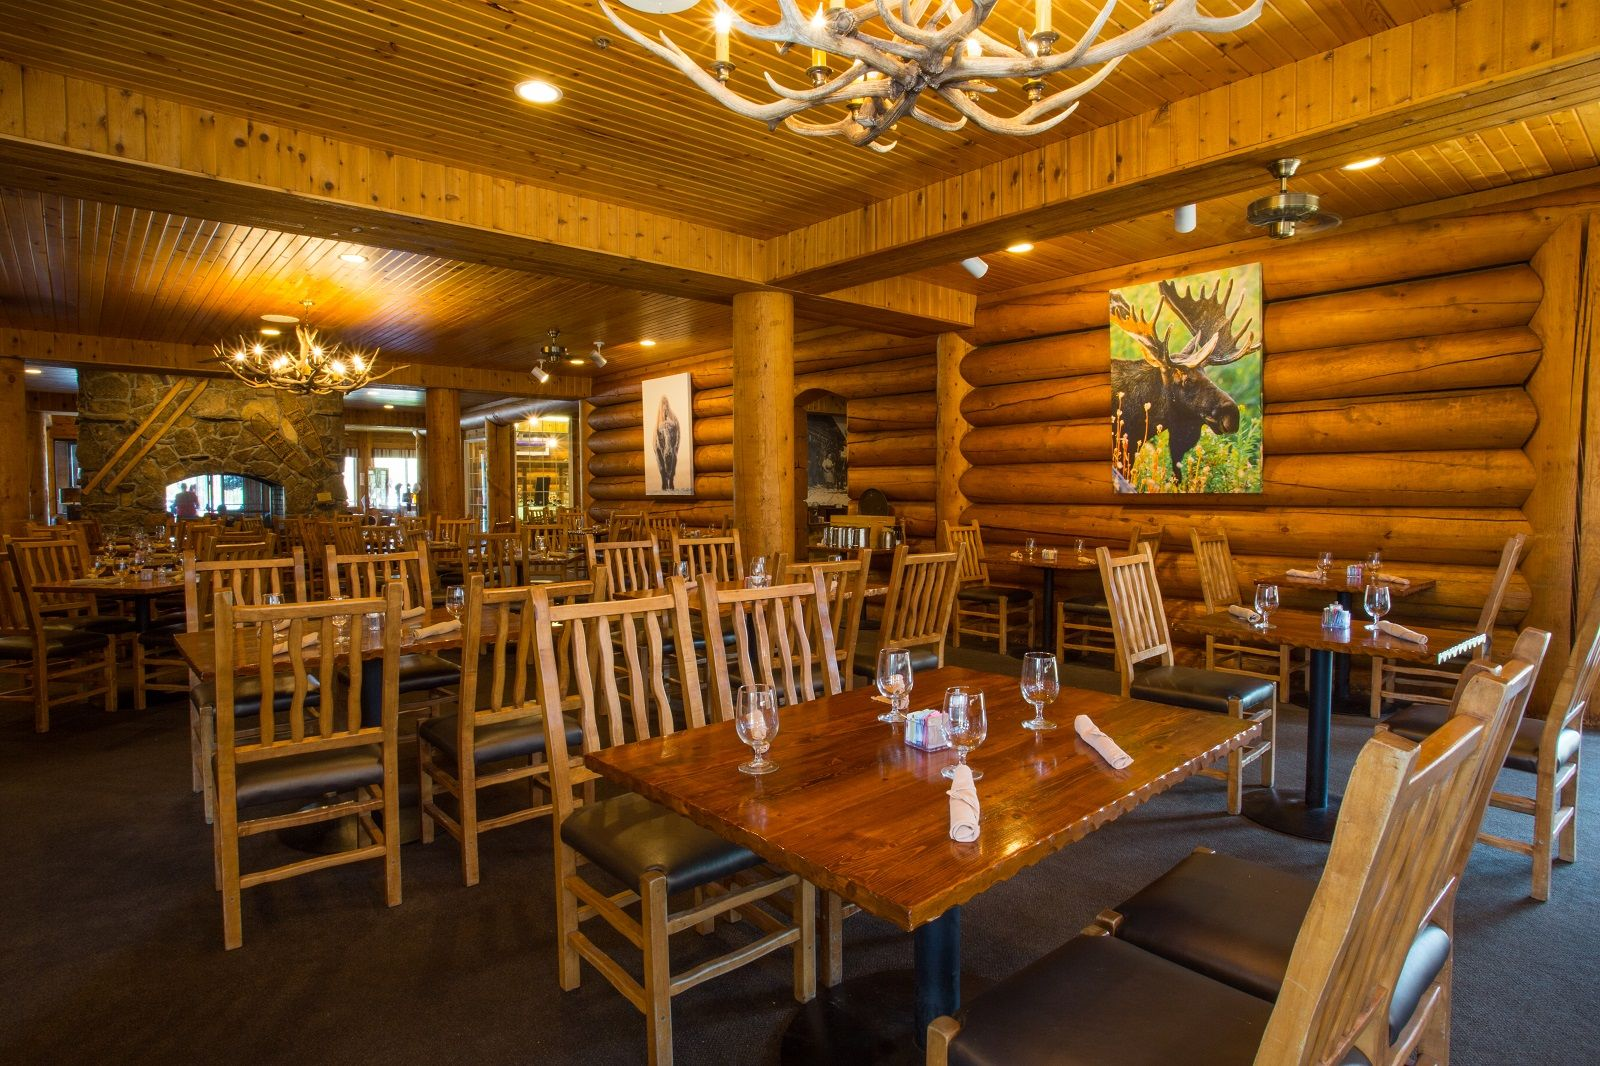 Headwaters Lodge At Flagg Ranch   Sheffields Restaurant   Dining   Cabins  In Between Yellowstone And